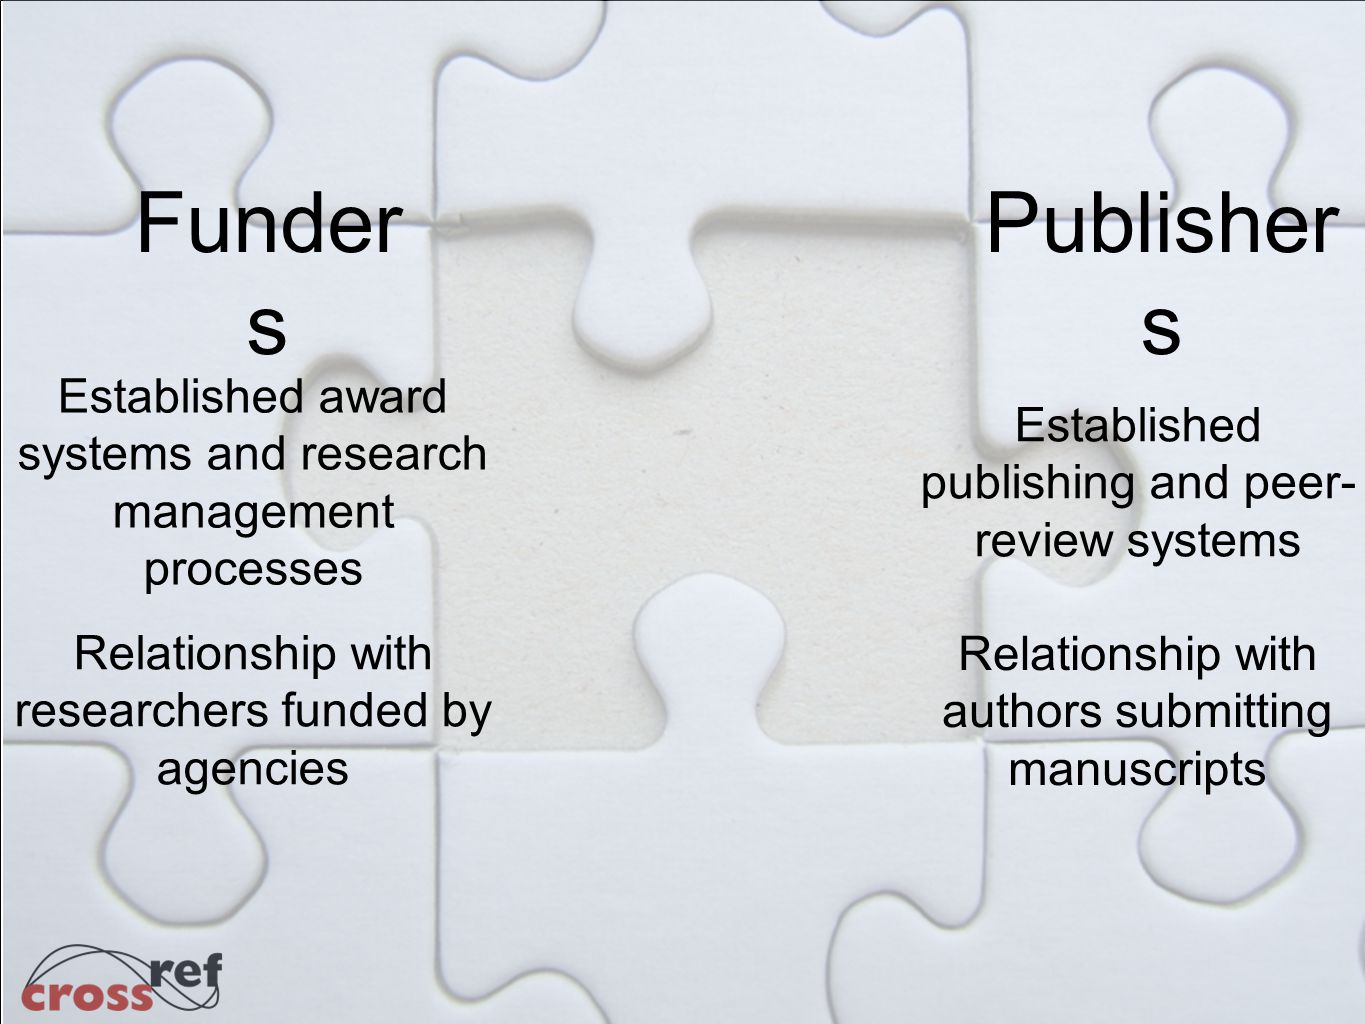 Publisher s Relationship with authors submitting manuscripts Established publishing and peer- review systems Funder s Relationship with researchers funded by agencies Established award systems and research management processes